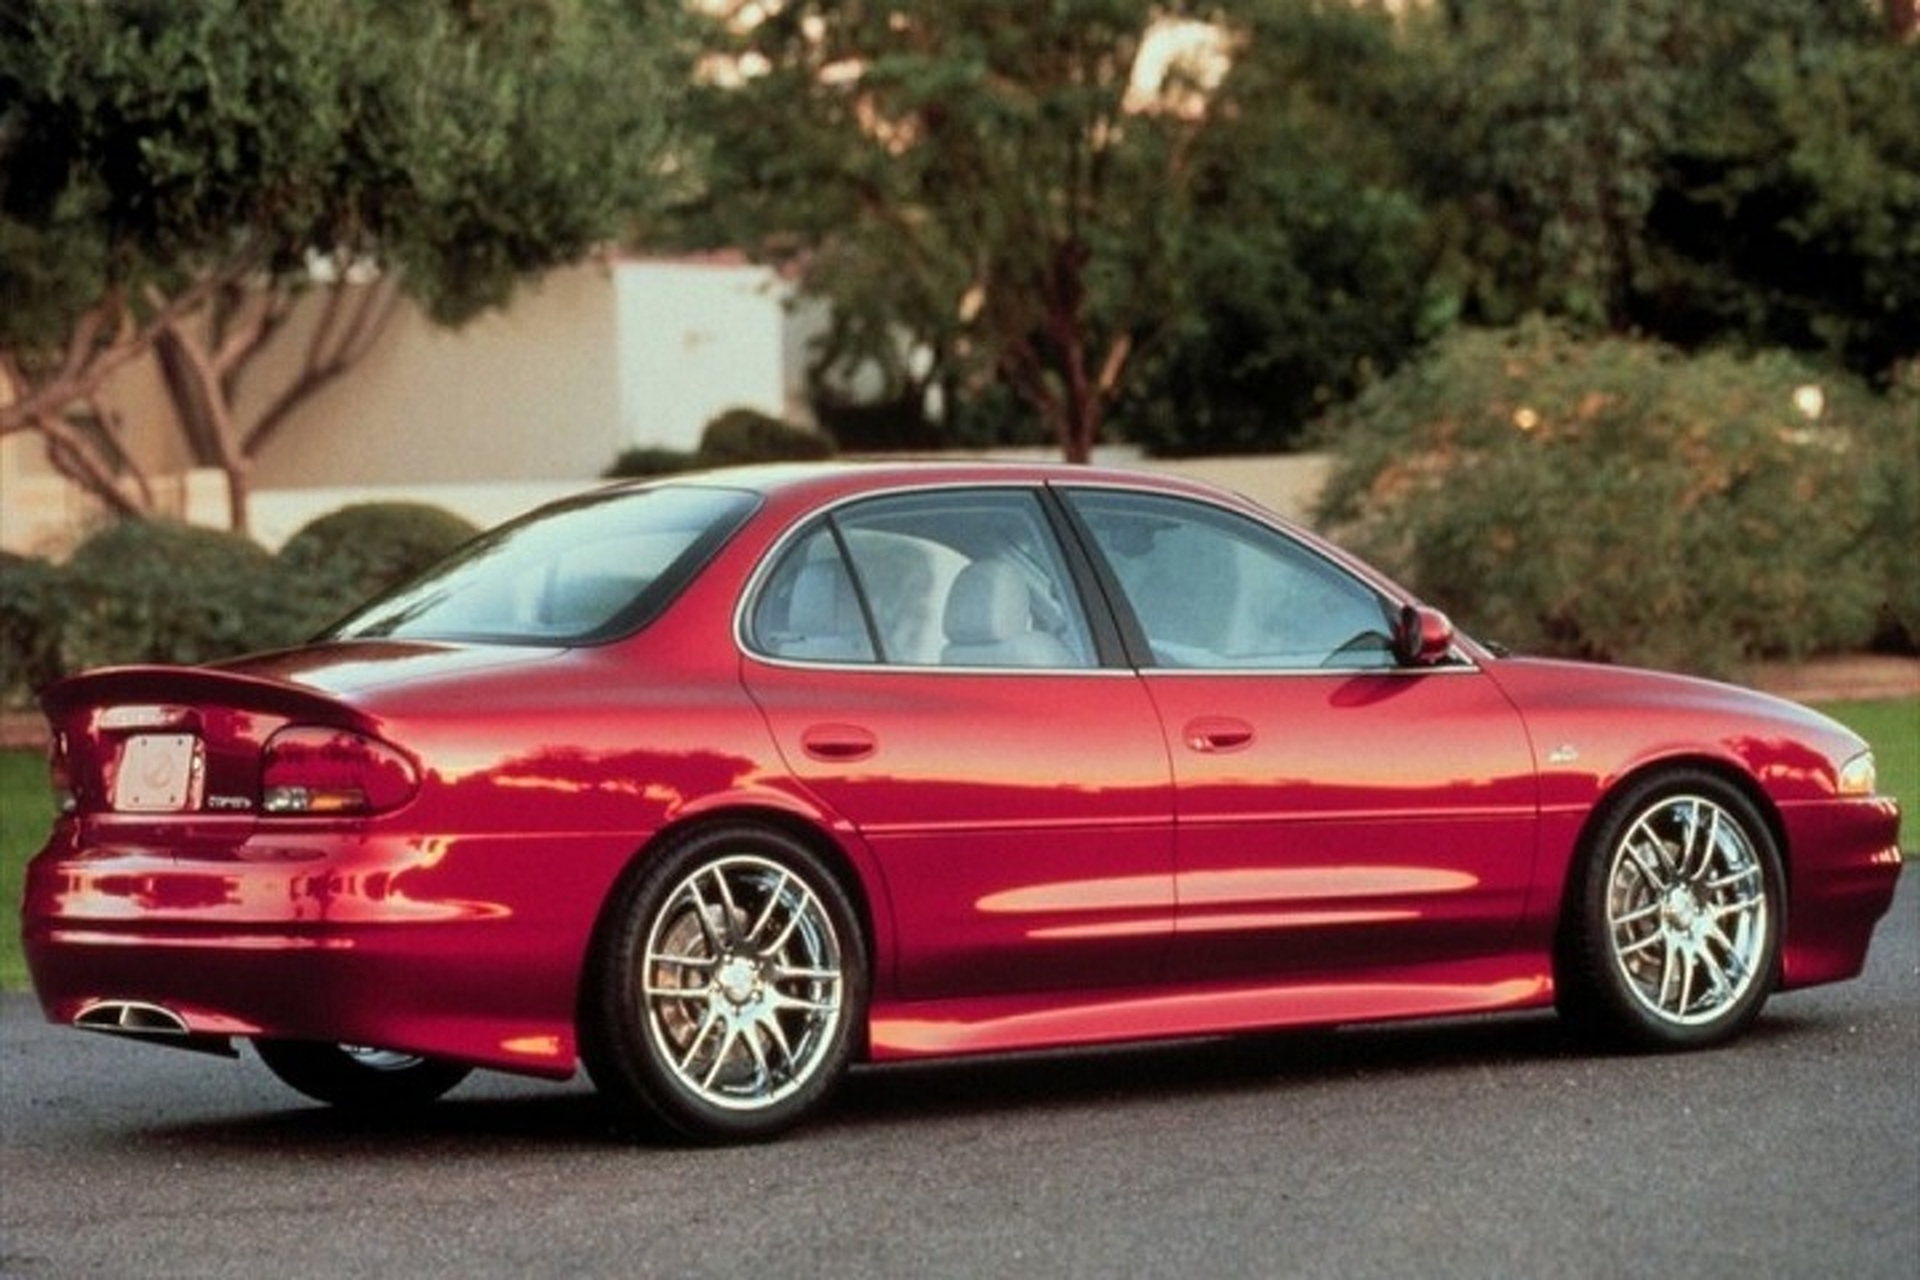 Oldsmobile Intrigue Osv Concept Is The Performance Sedan That Never Was 2003 Alero Exhaust Diagram Category